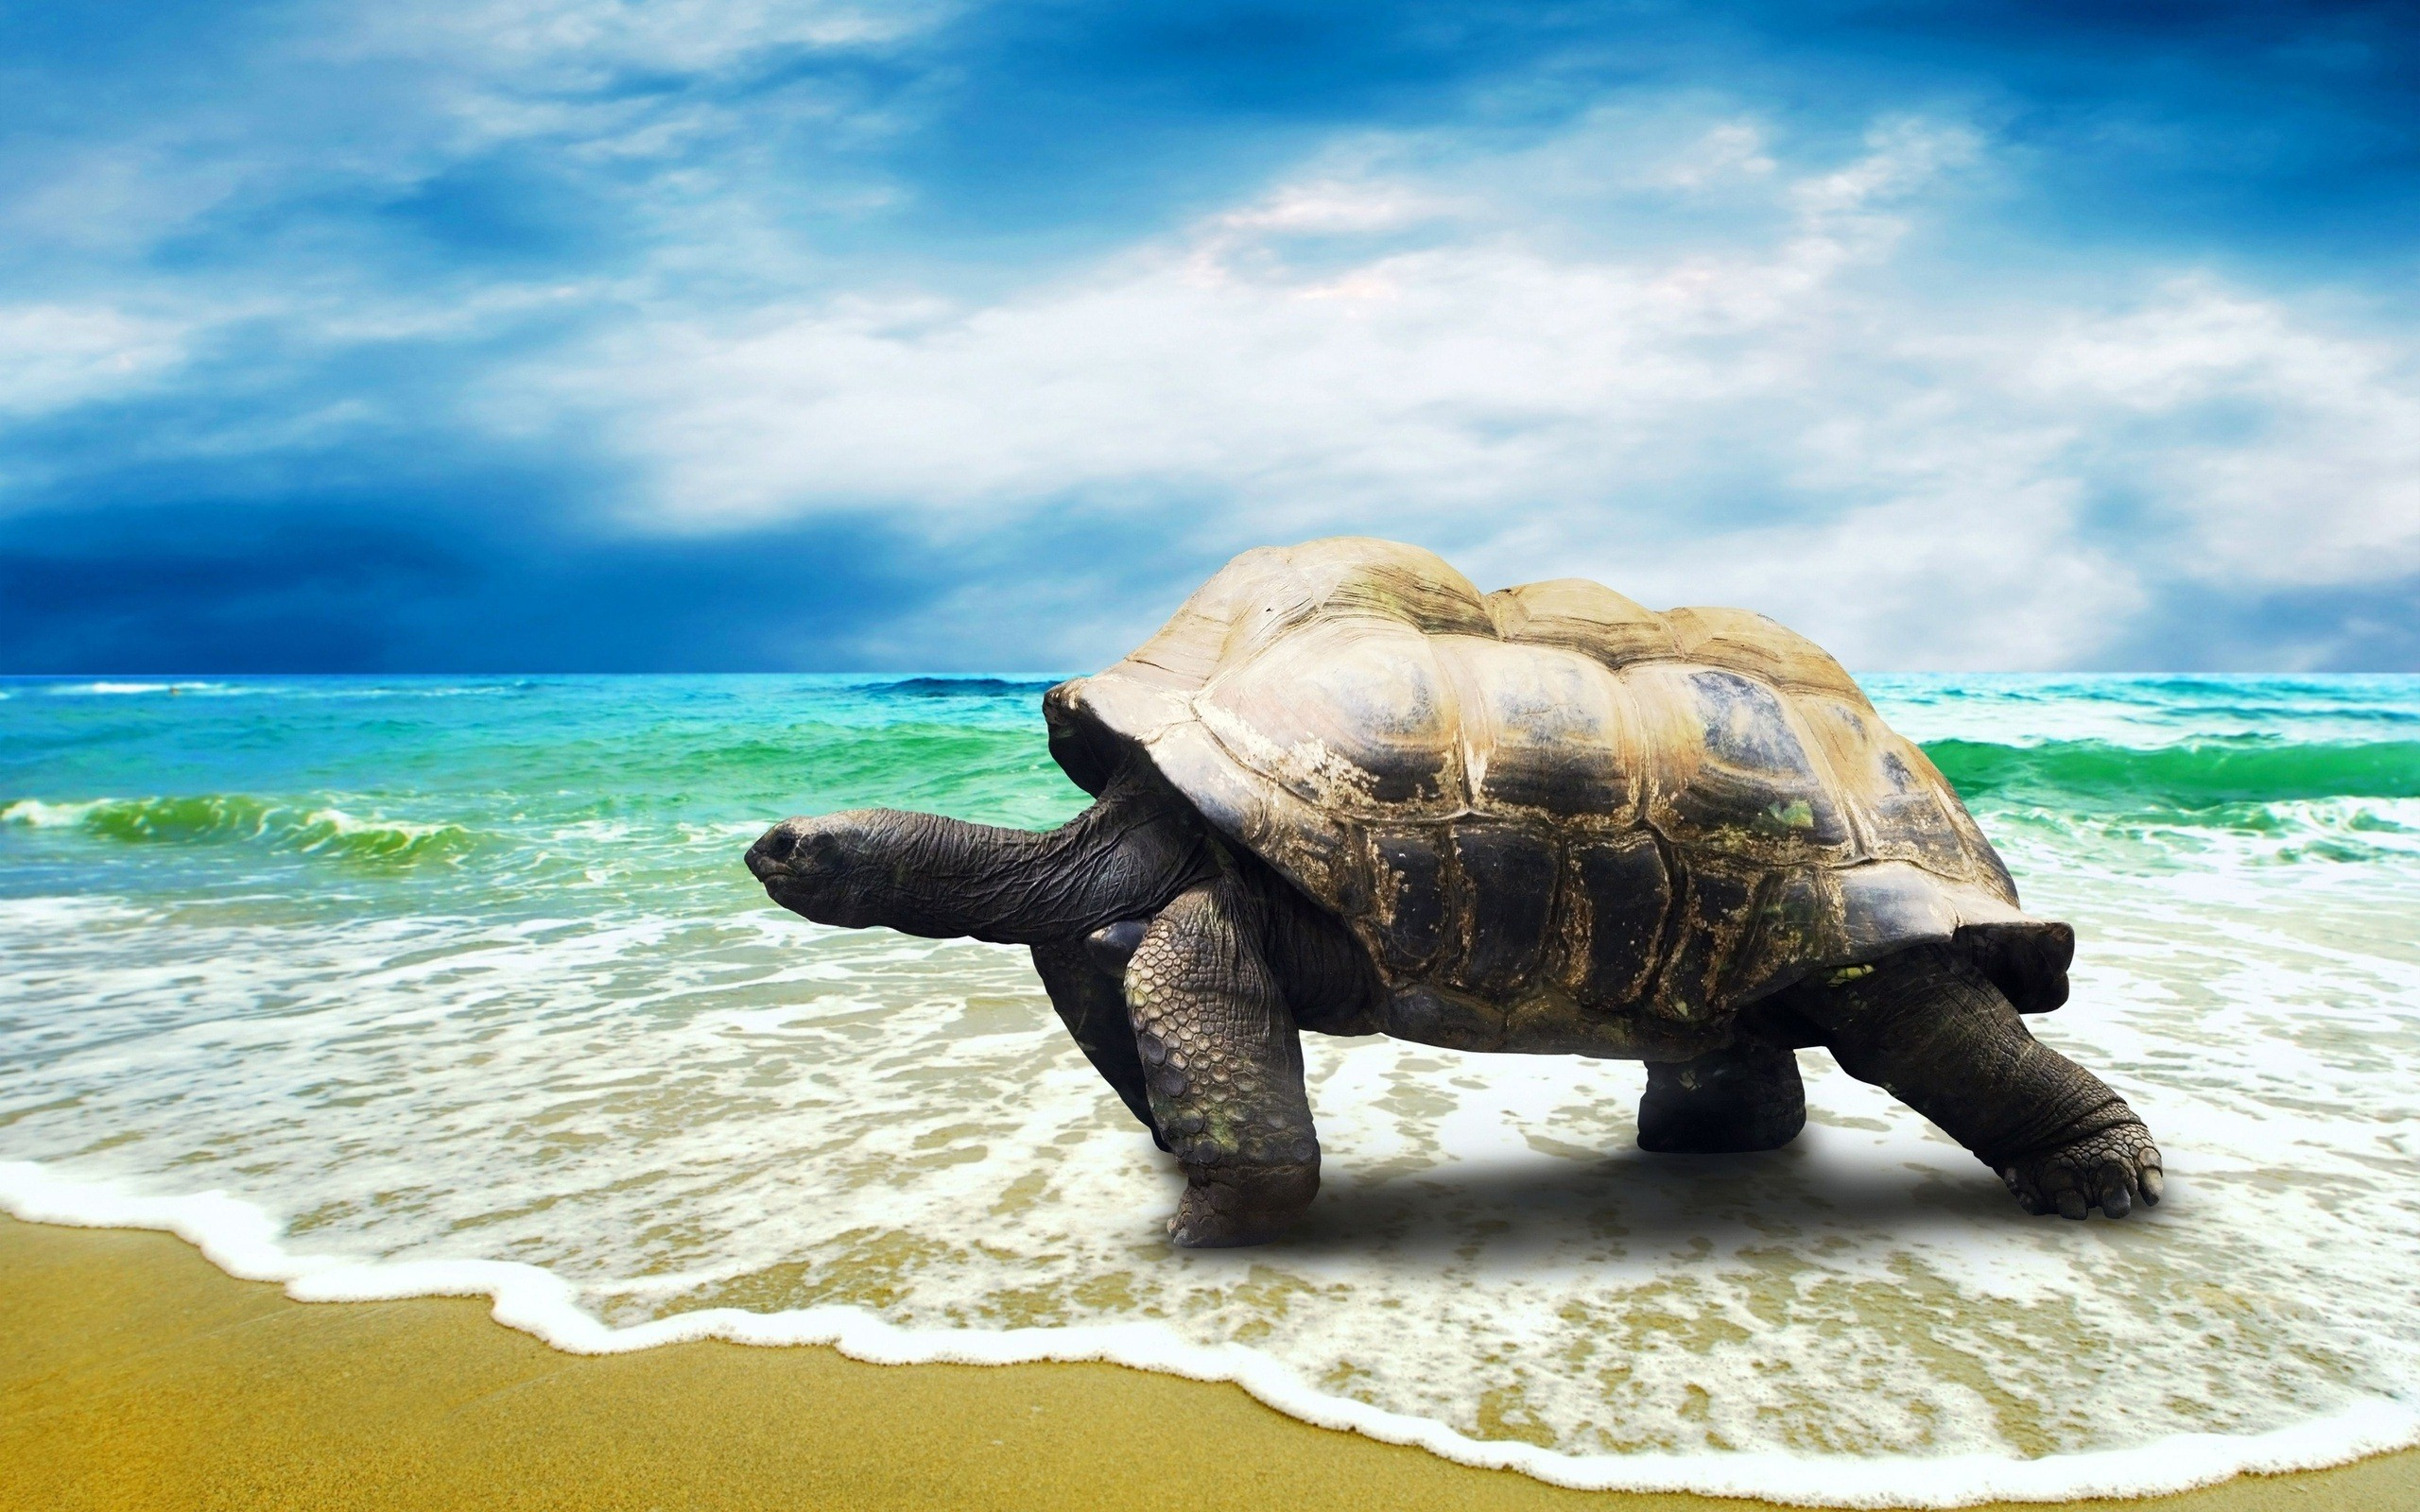 Baby turtles on the beach wallpaper – photo#12